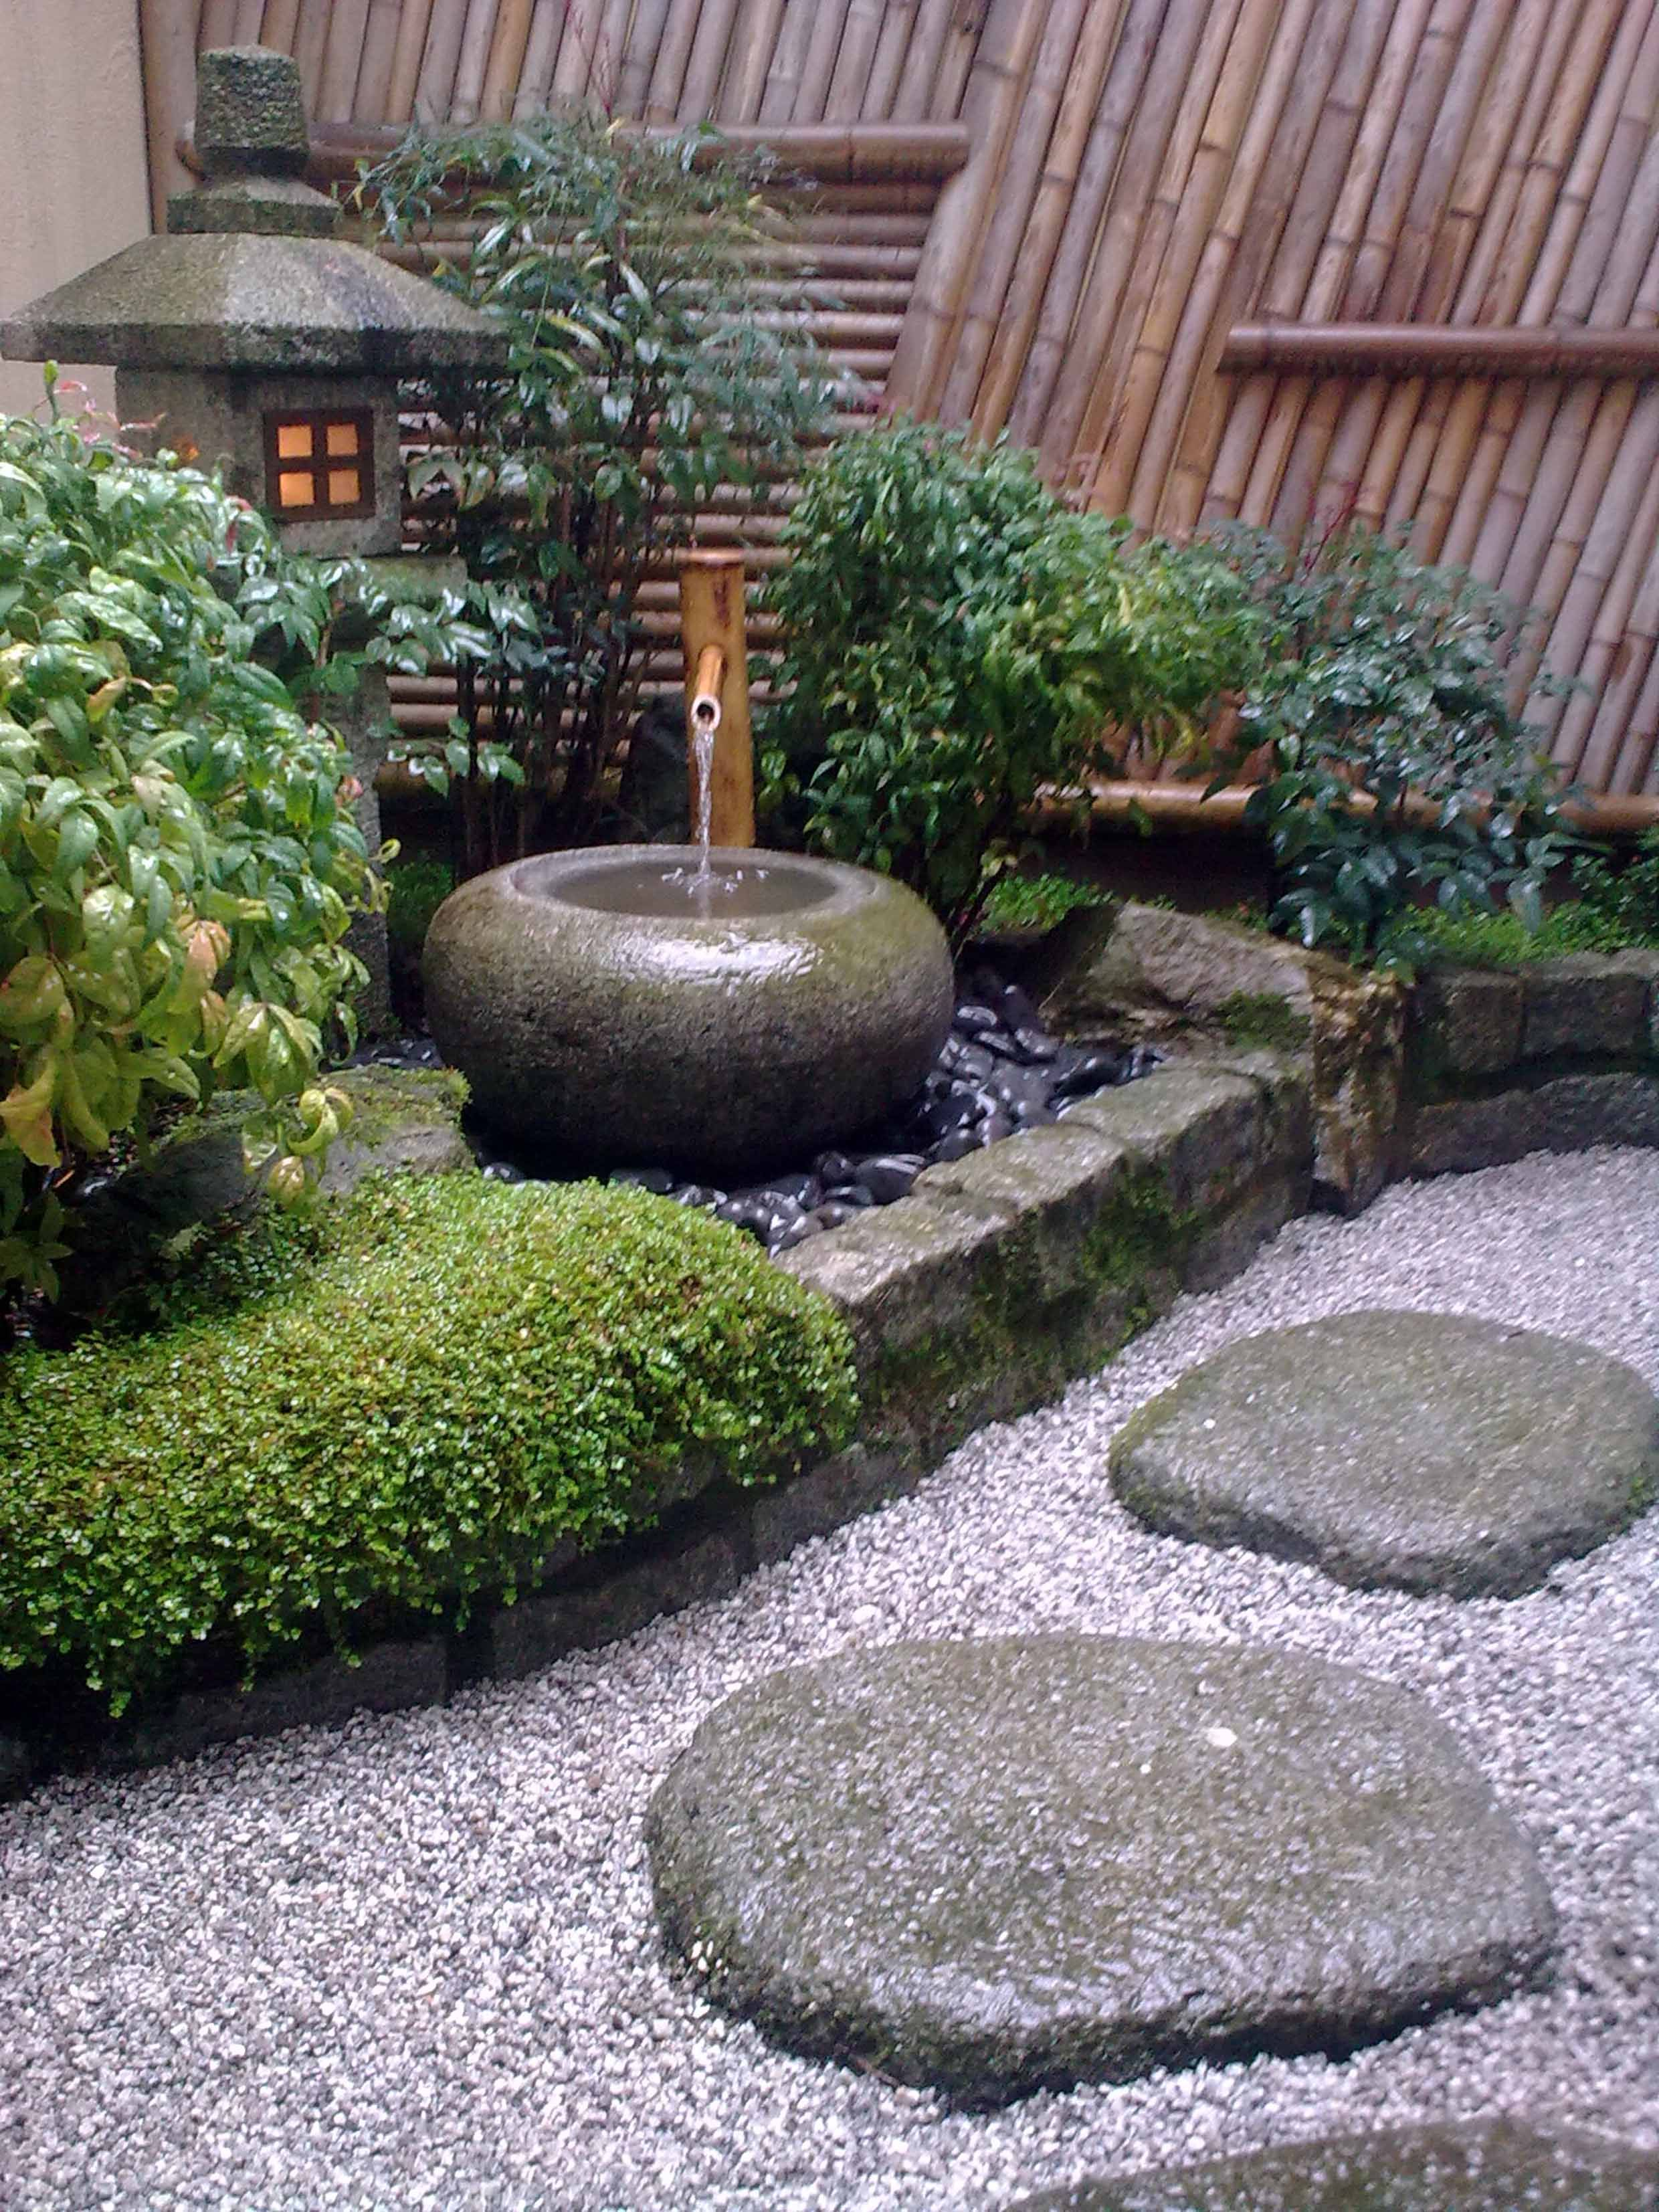 Kleiner Japanischer Garten Traditional Japanese Courtyard Garden Pretties And How To